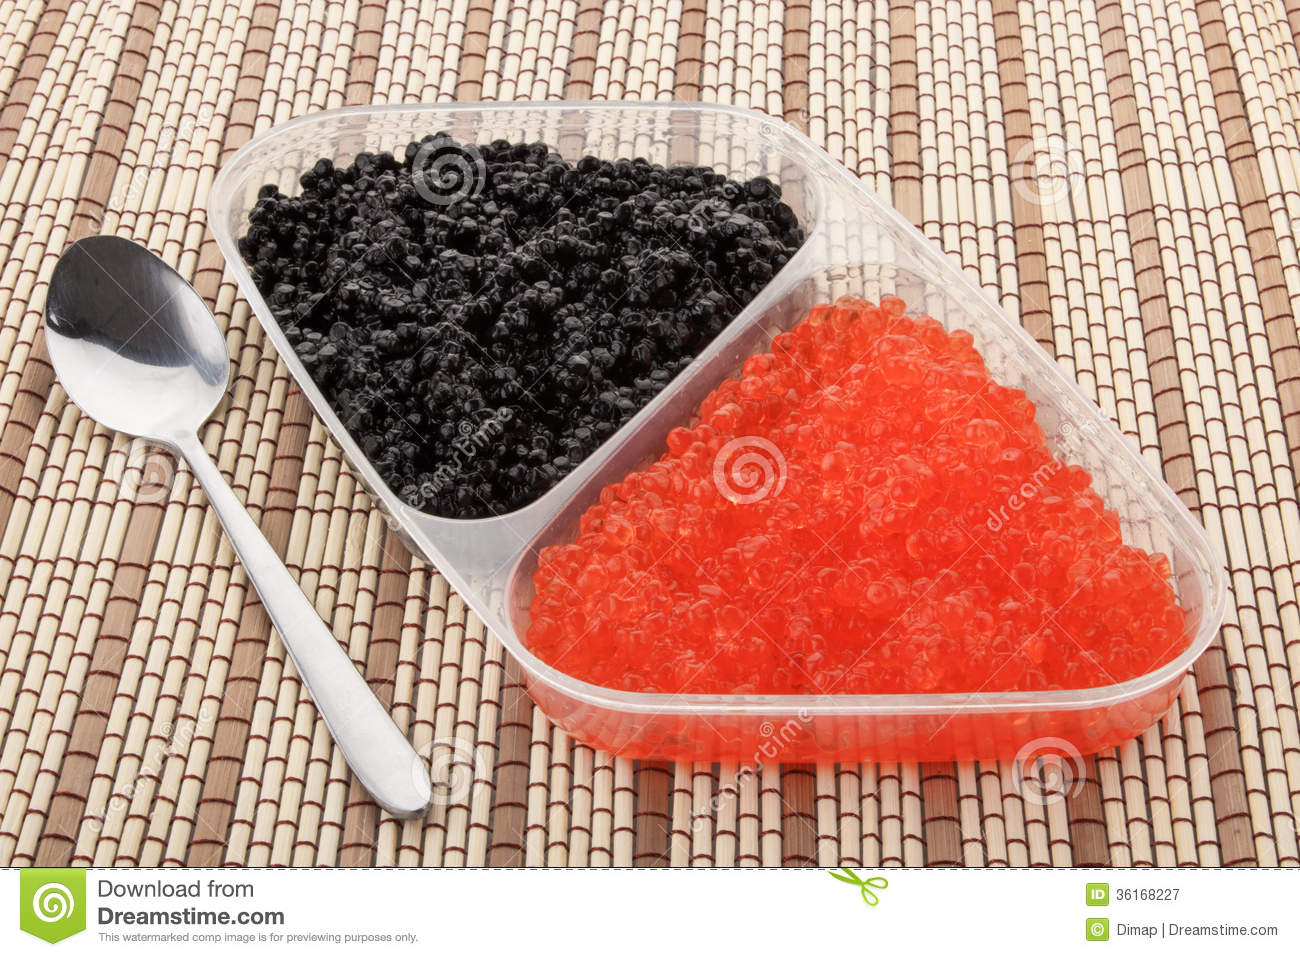 Fish eggs royalty free stock photography image 36168227 for Black fish eggs